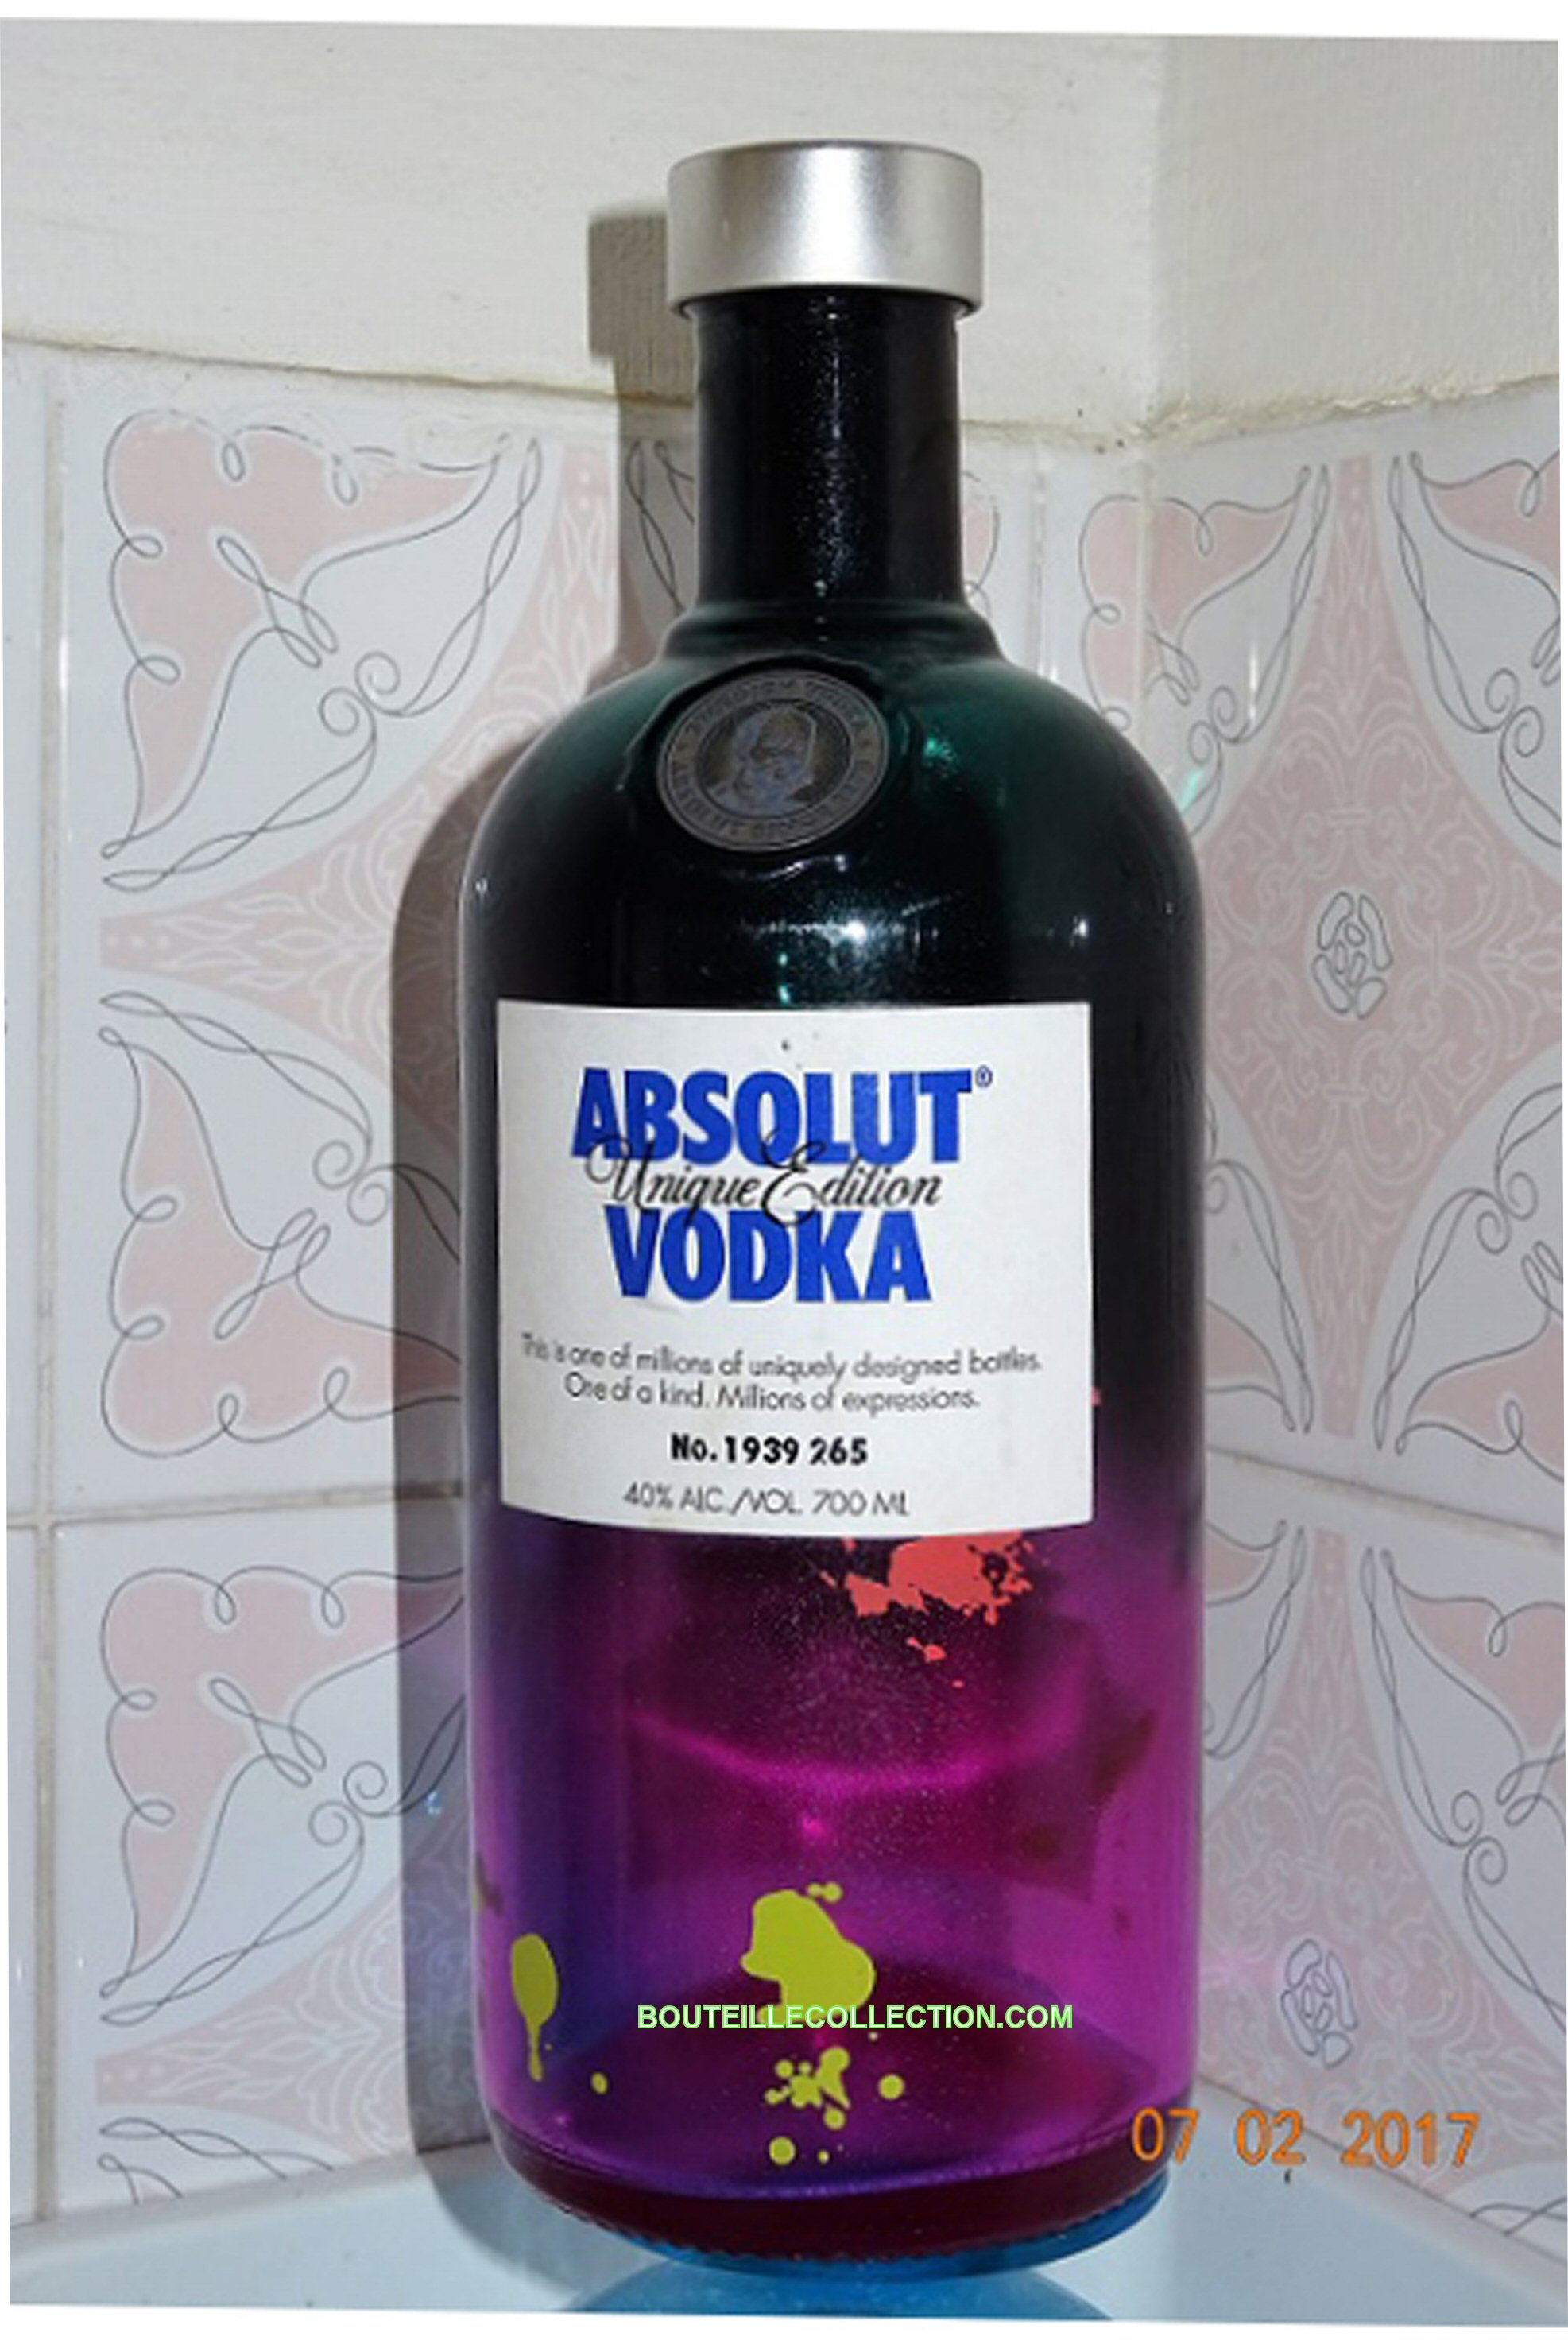 ABSOLUT UNIQUE EDITION 70CL FA 265 .jpg